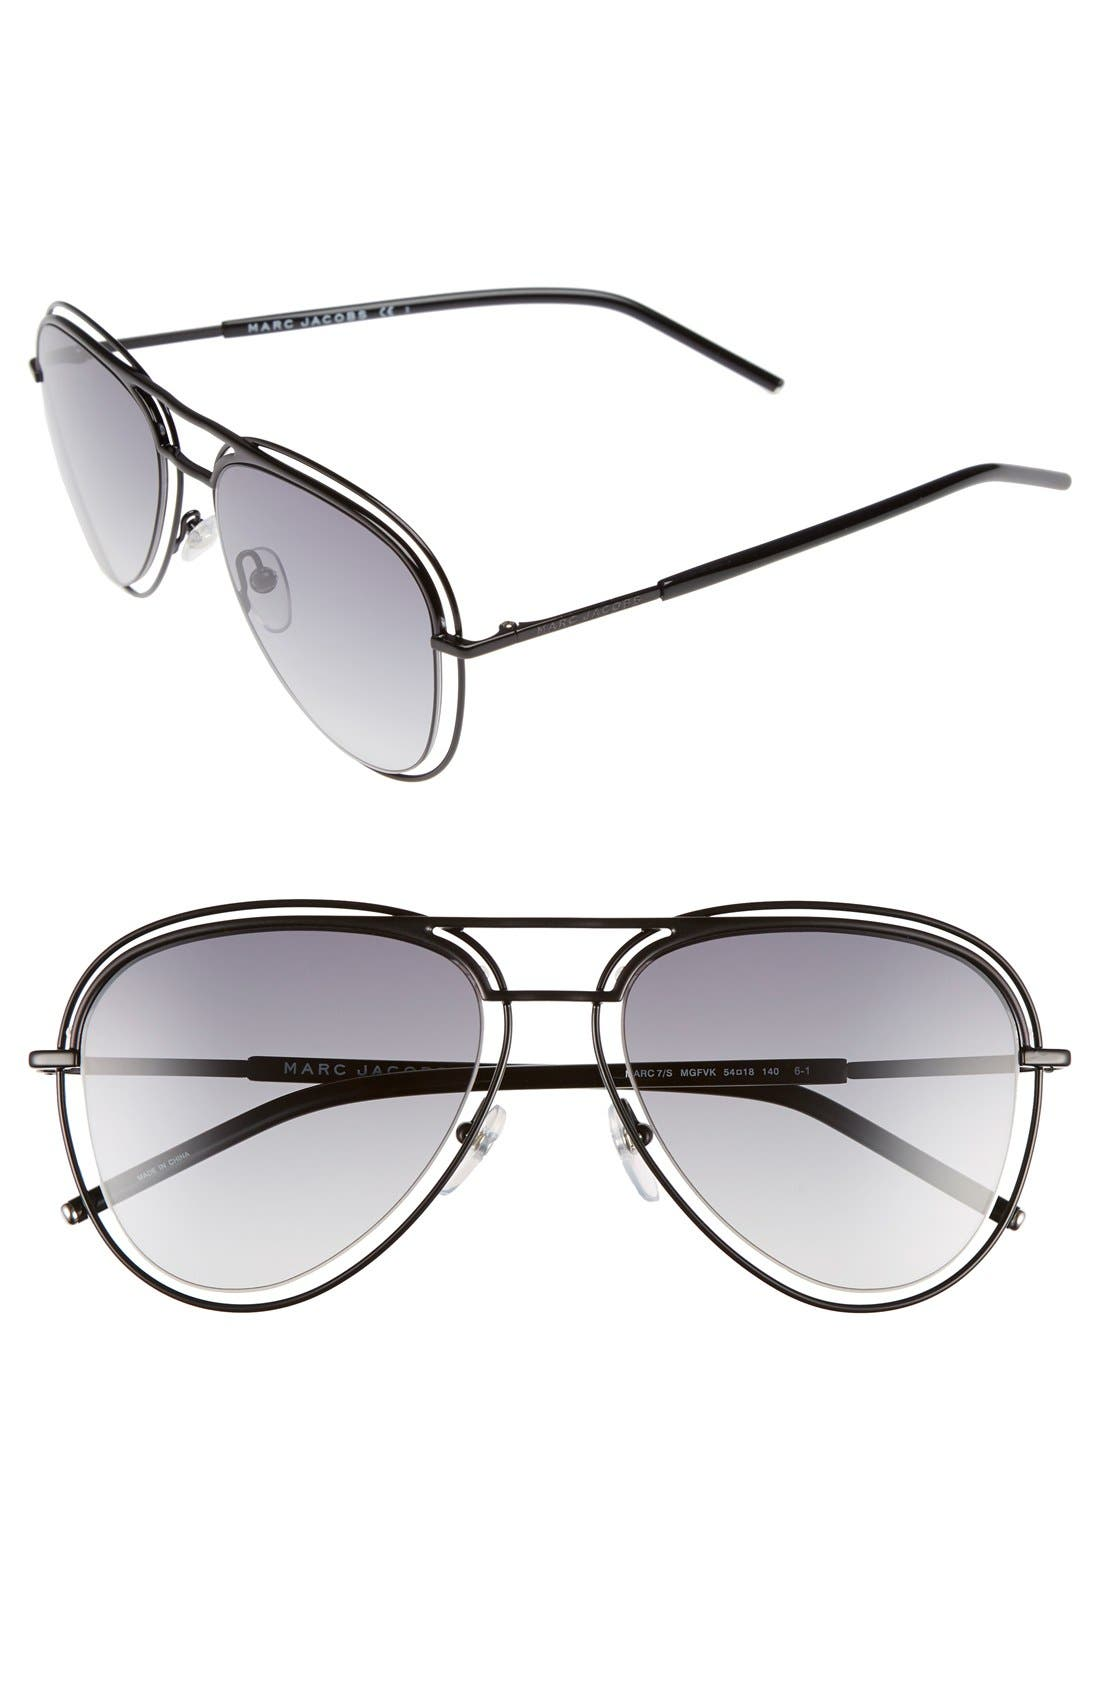 Main Image - MARC JACOBS 54mm Aviator Sunglasses